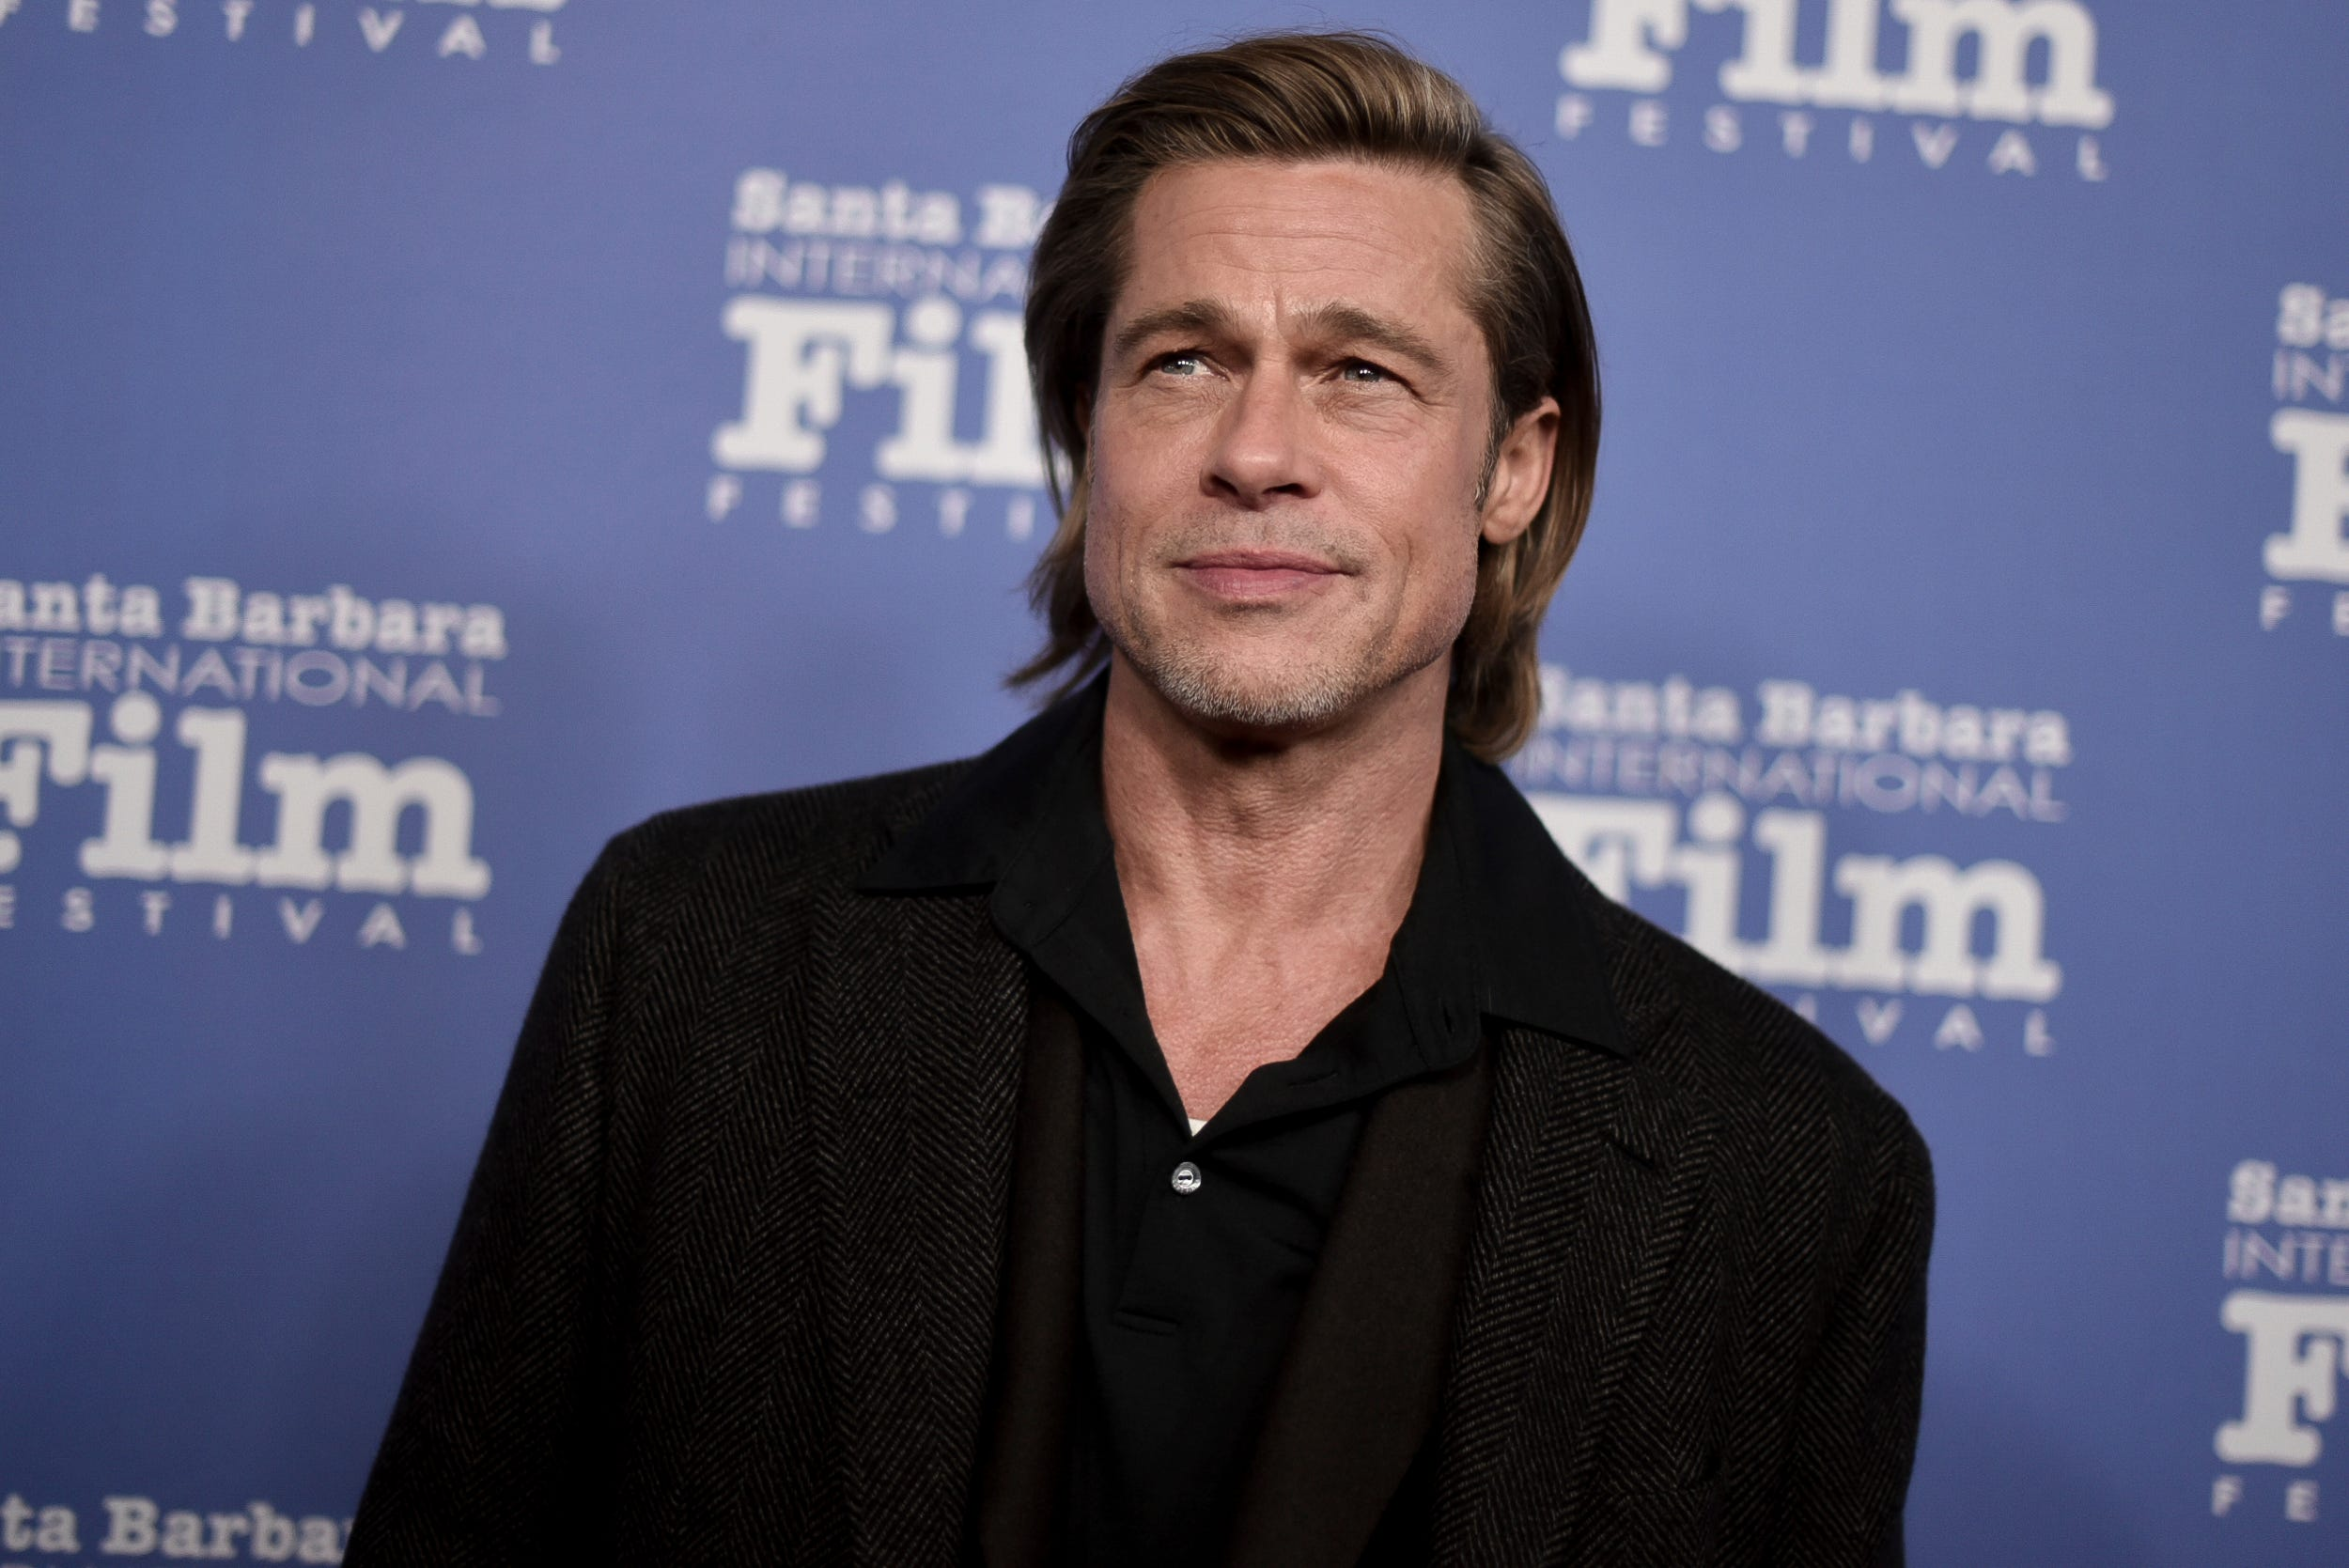 Brad Pitt is the latest Hollywood star to lend his voice to a Joe Biden campaign ad